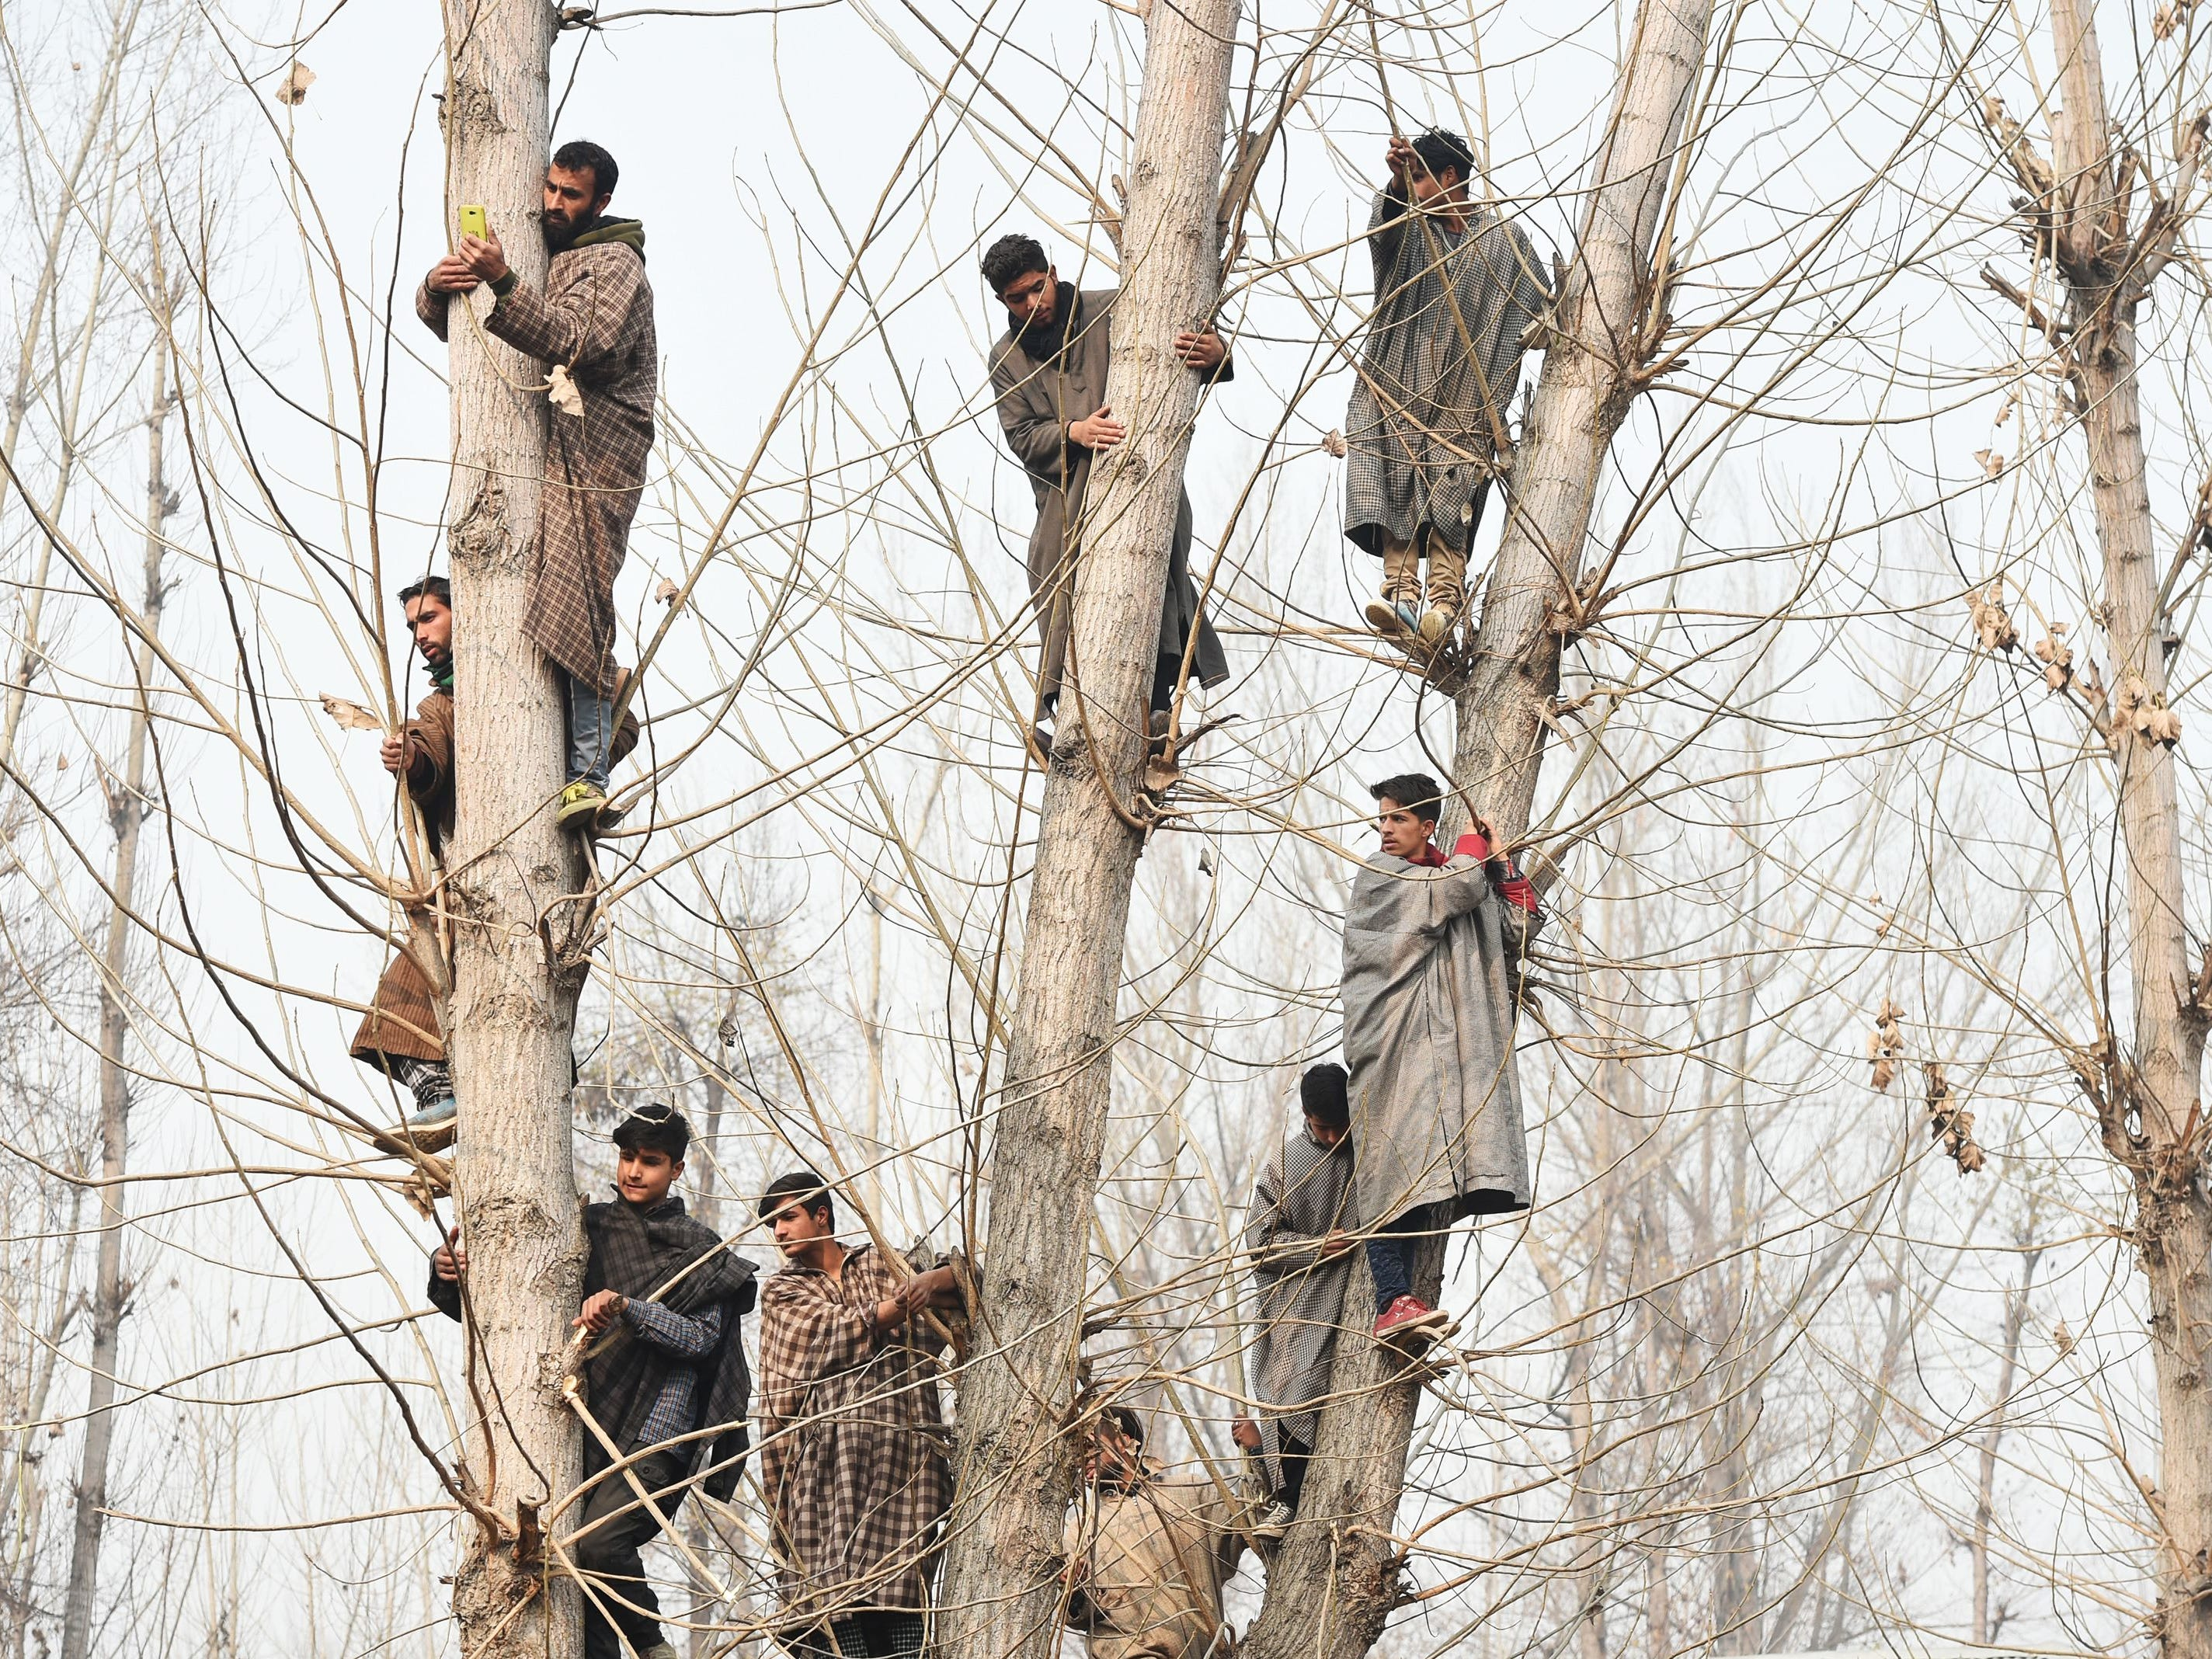 Kashmiri villagers look on from atop a tree during the funeral procession of militant Azad Ahmed Malik, who was killed in a gun battle with Indian soldiers, in Arwani village in Kashmir on Friday, November 23, 2018. - Six militants were killed during a gun battle with Indian governments forces early in the morning.